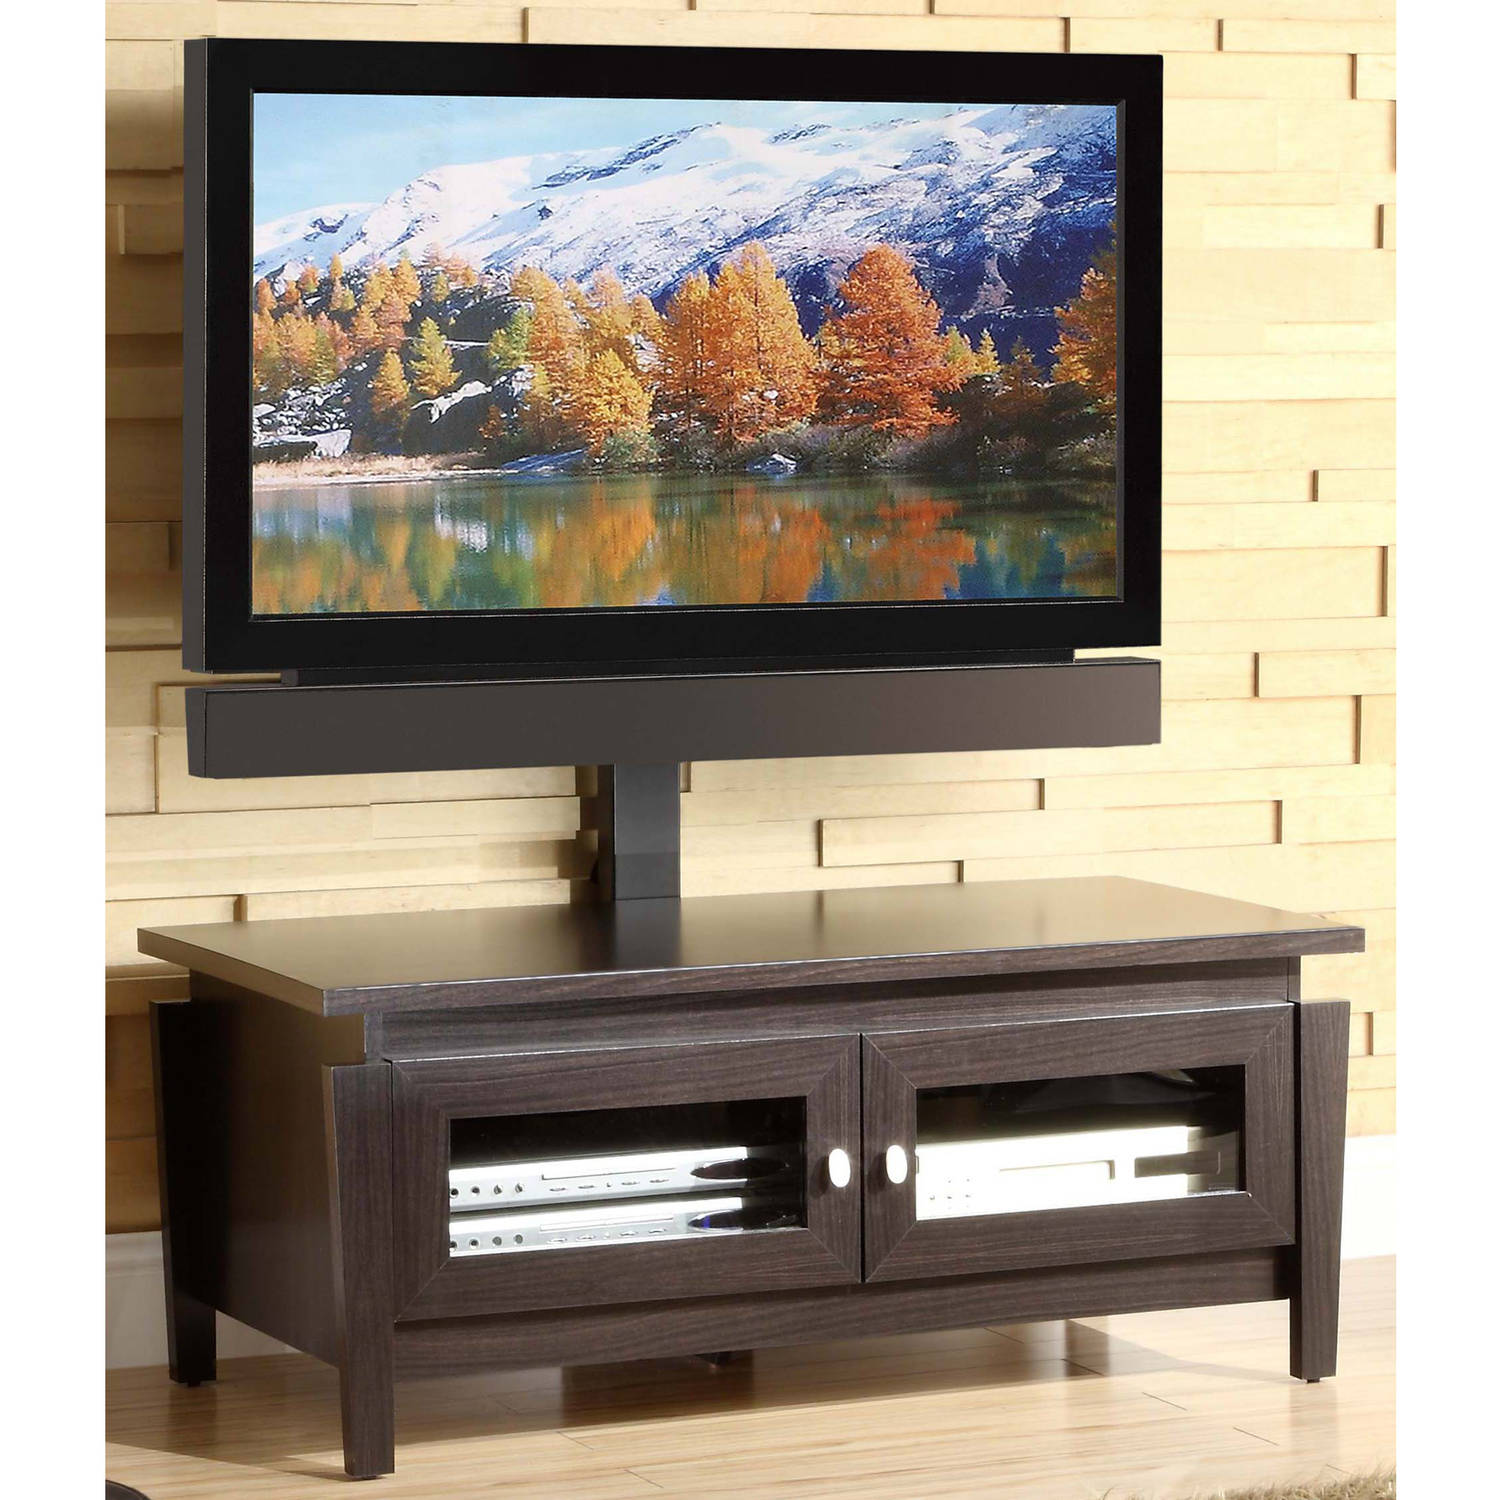 Whalen TV Stand with Swinging Mount, for TVs up to 50